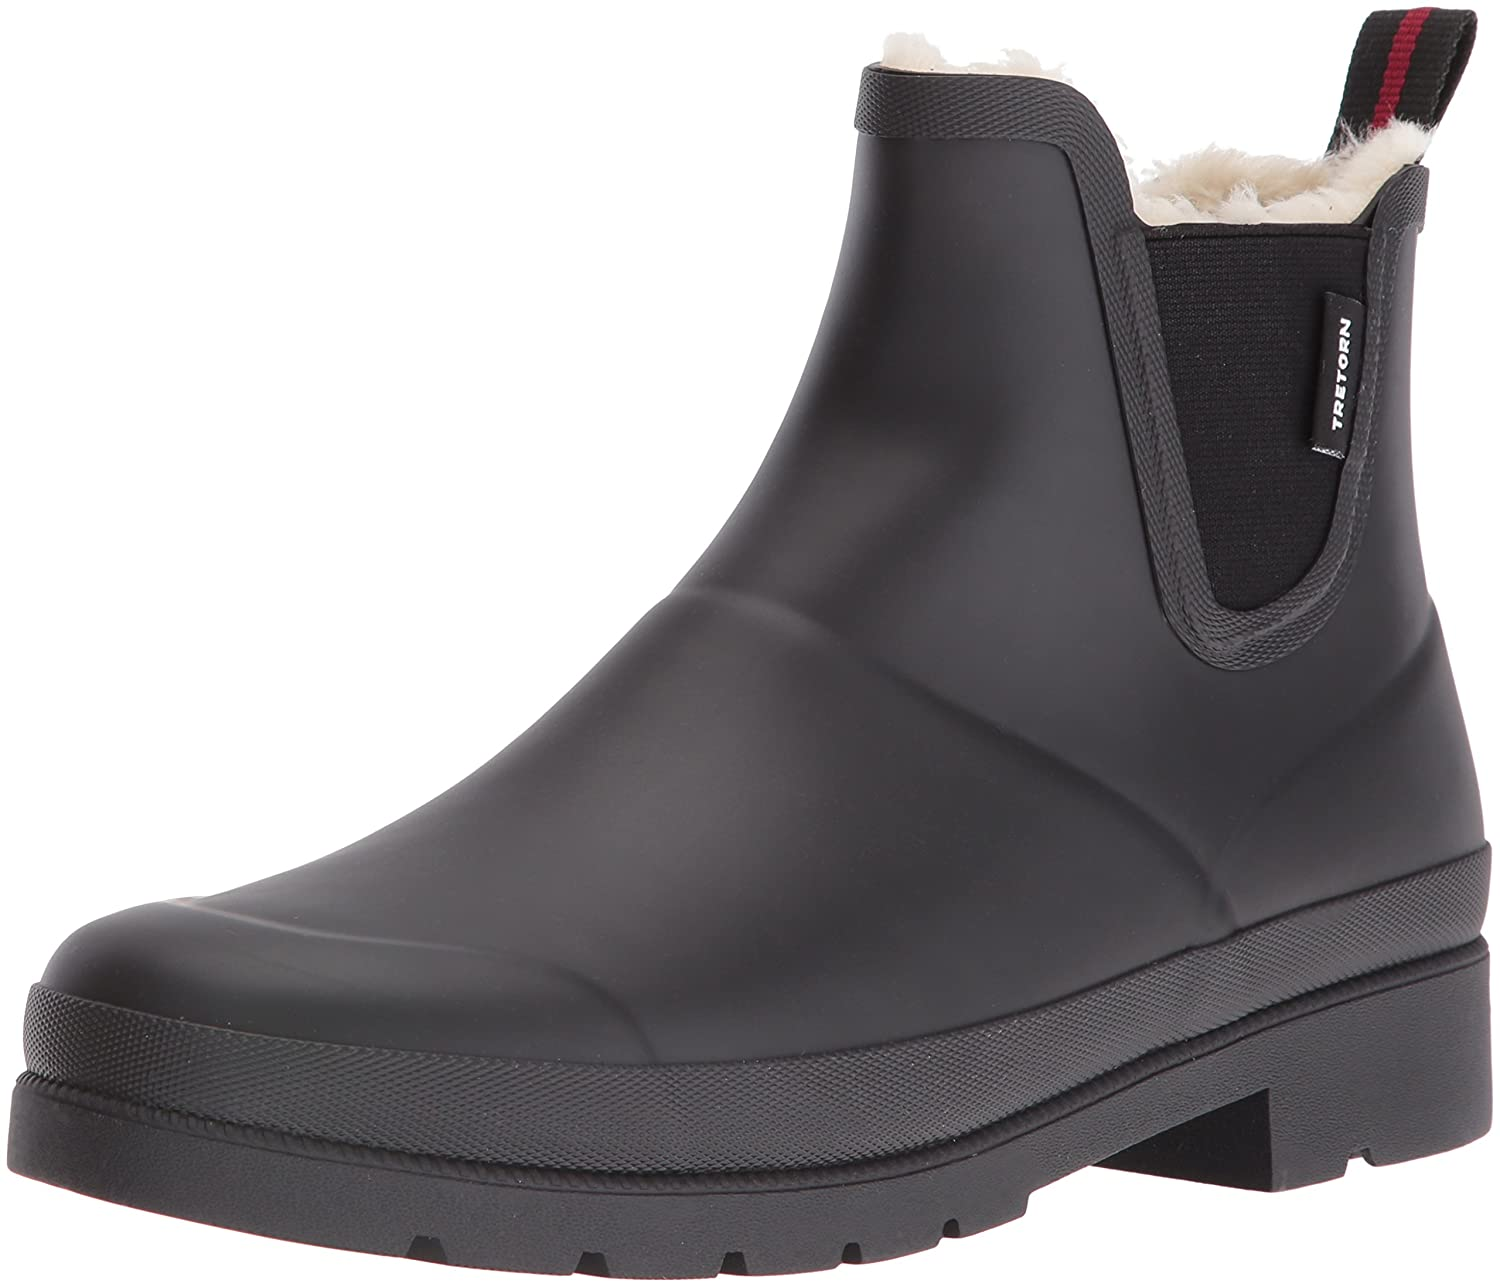 Tretorn Women's Lina Wnt Rain Boot B01G62JR5Y 7 B(M) US|Black/Black